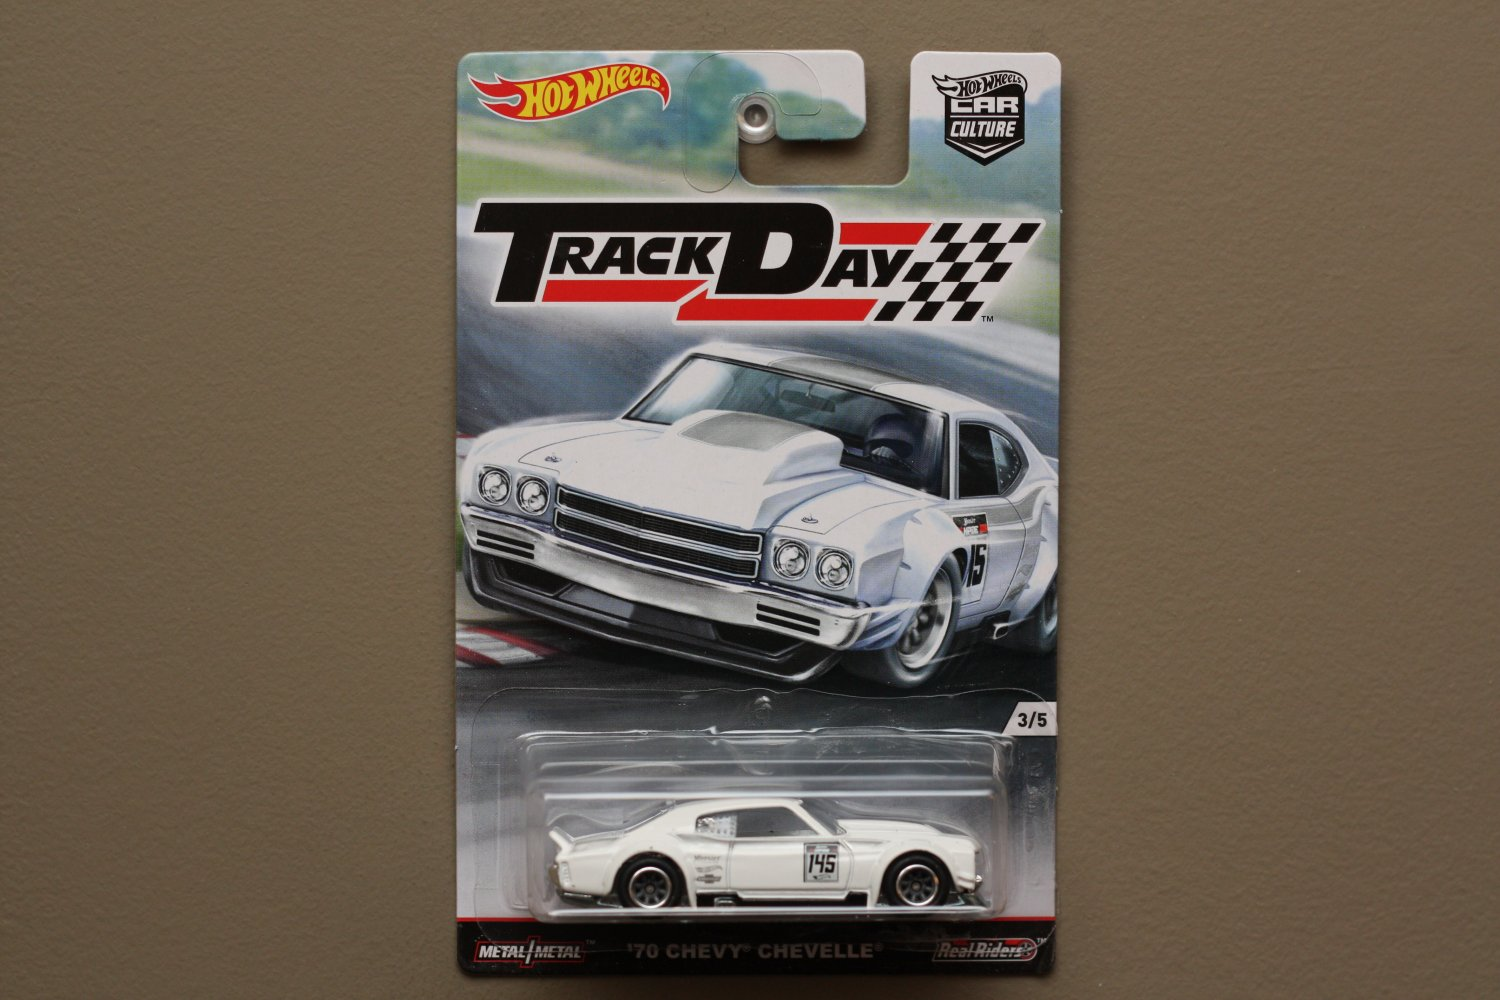 Hot Wheels 2016 Car Culture Track Day '70 Chevy Chevelle